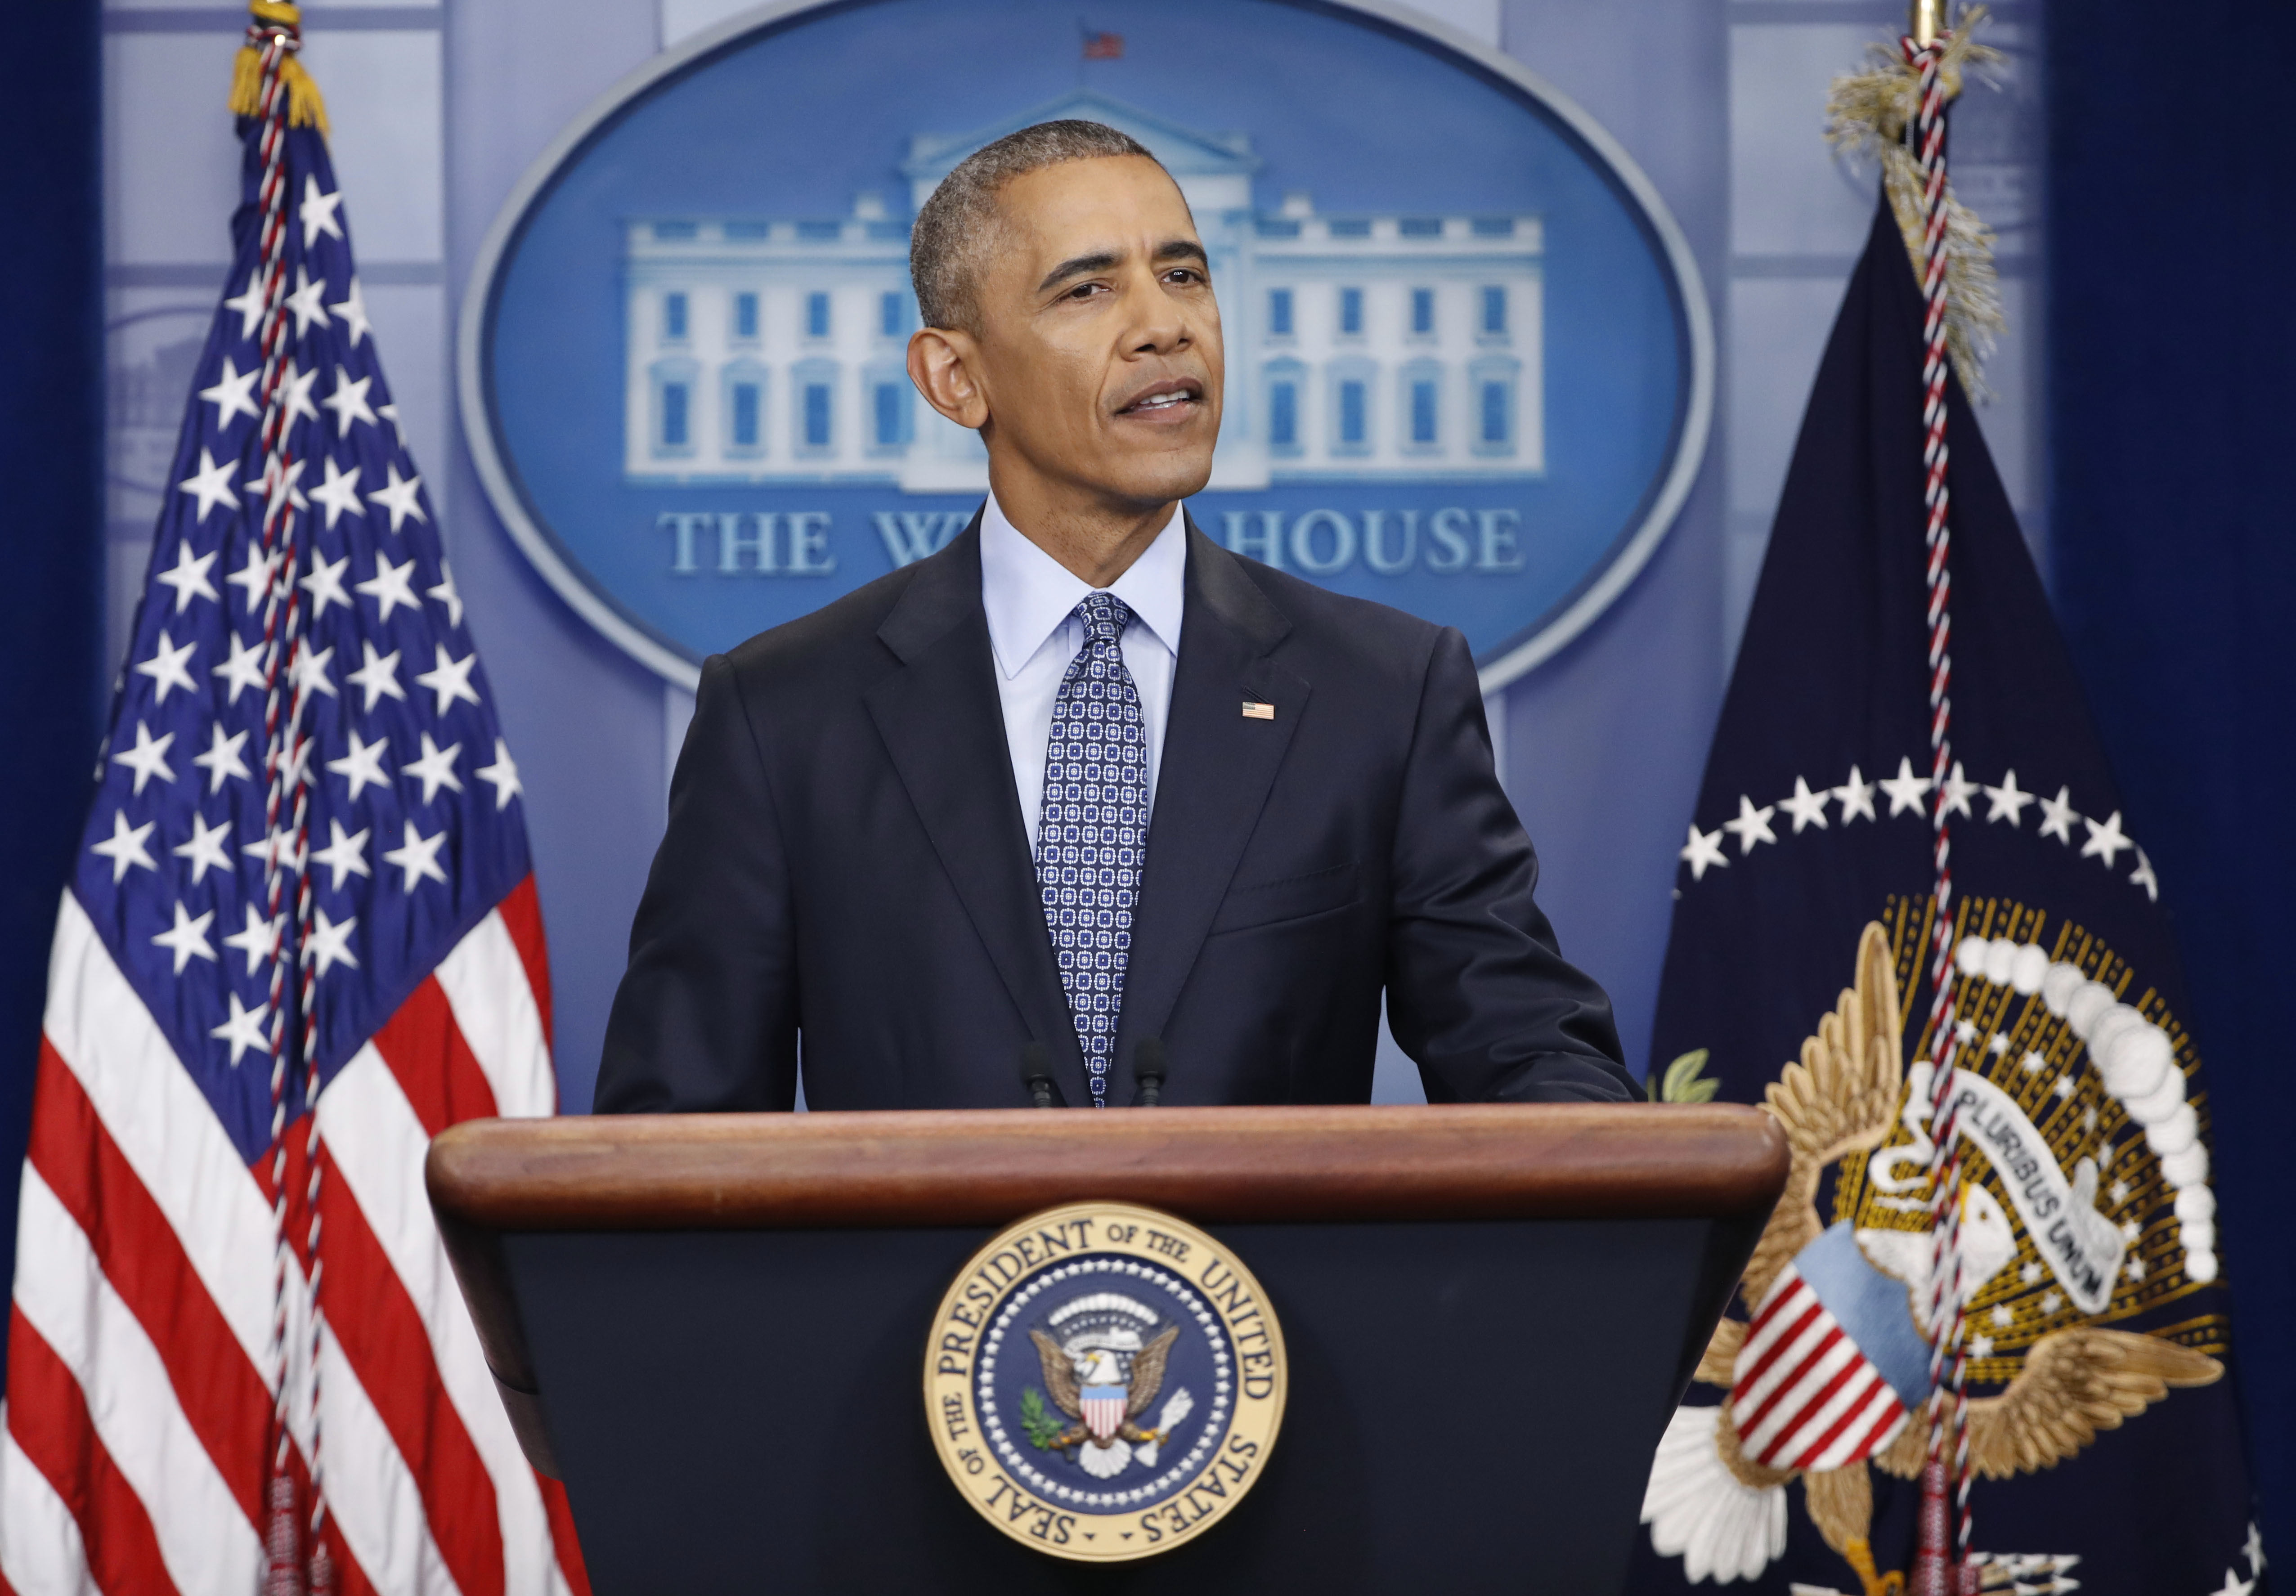 President Obama speaks during his final presidential news conference, on Jan. 18, 2017.